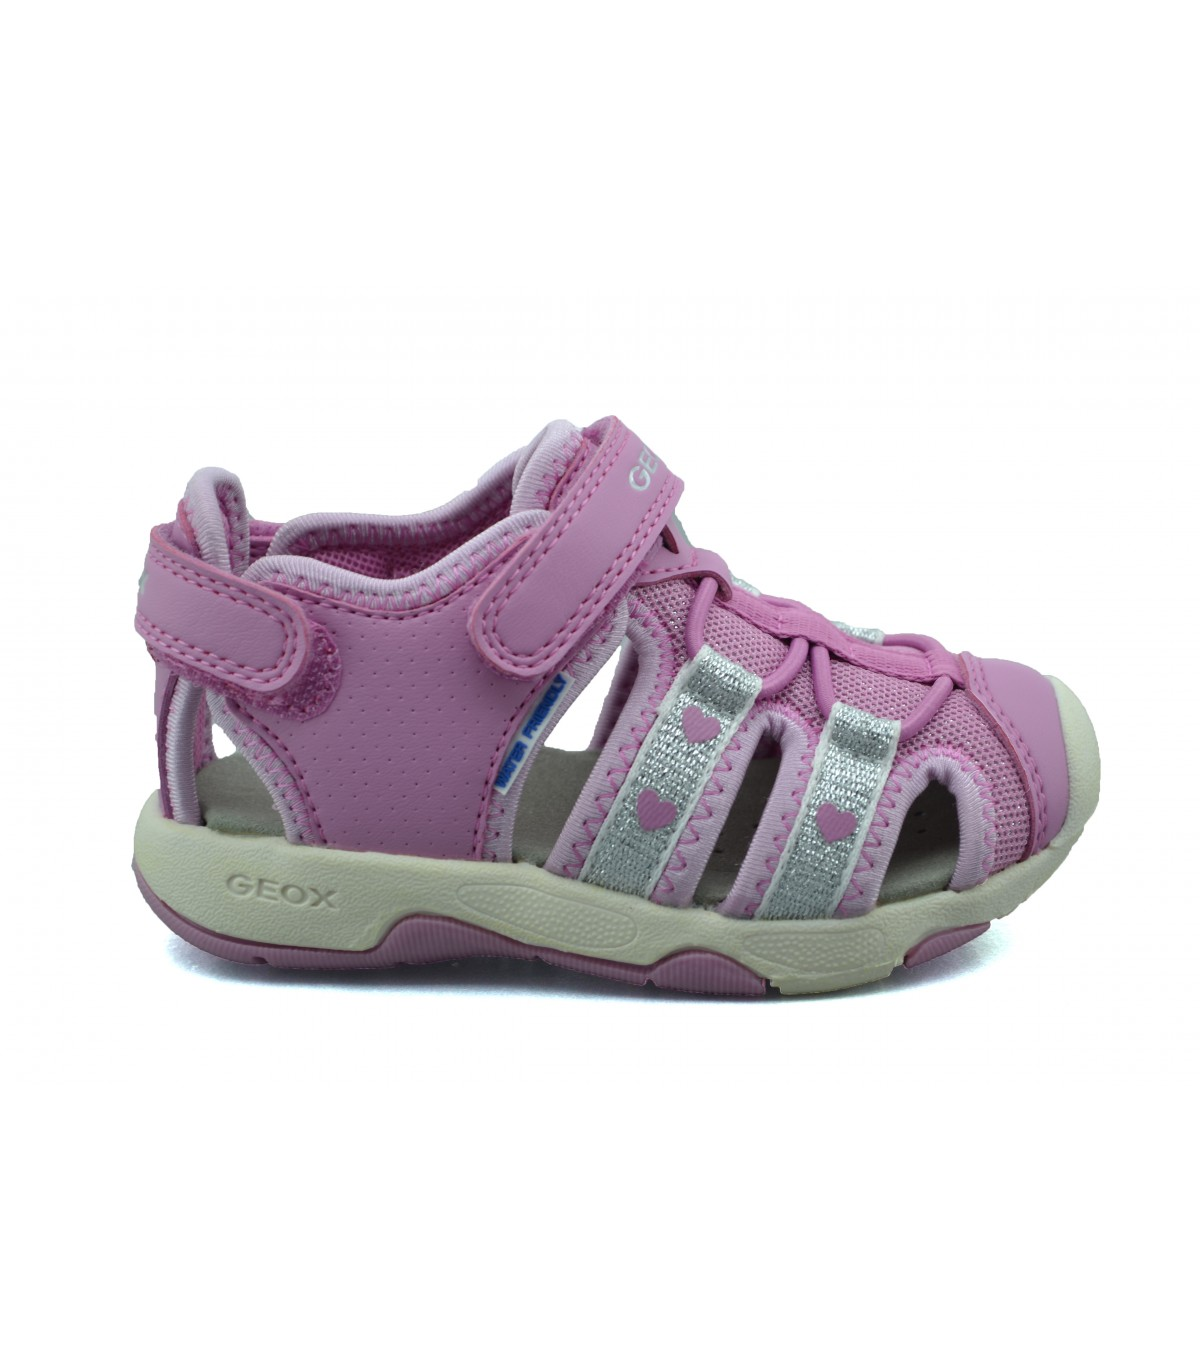 Friendly Geox Niña Water Sandalias 920 zpMVSGqU